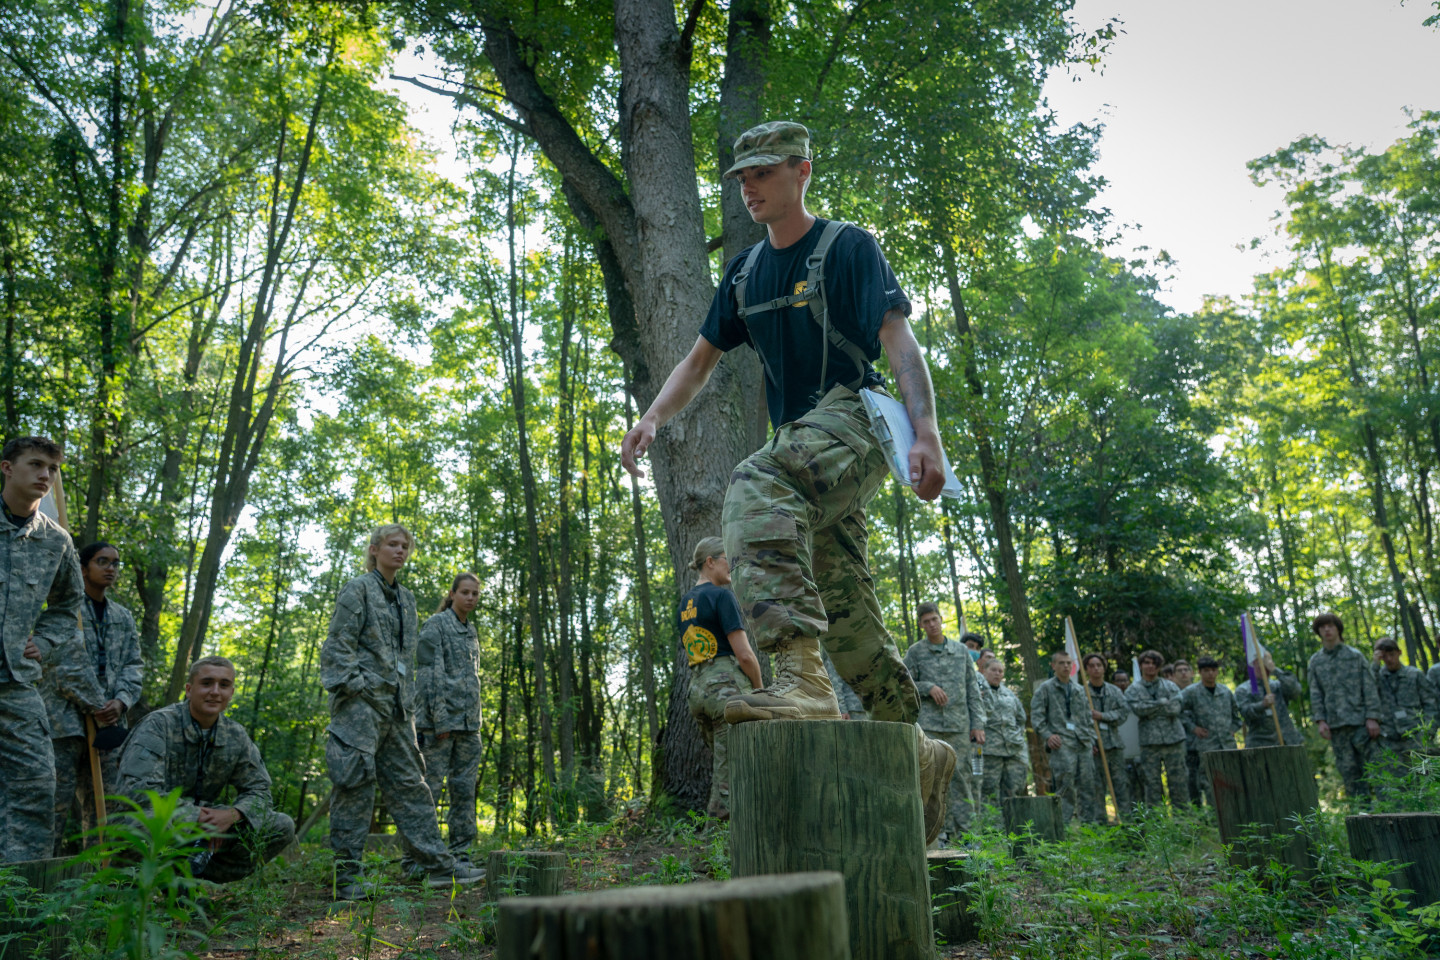 An ROTC cadet walks across stumps on an obstacle course.